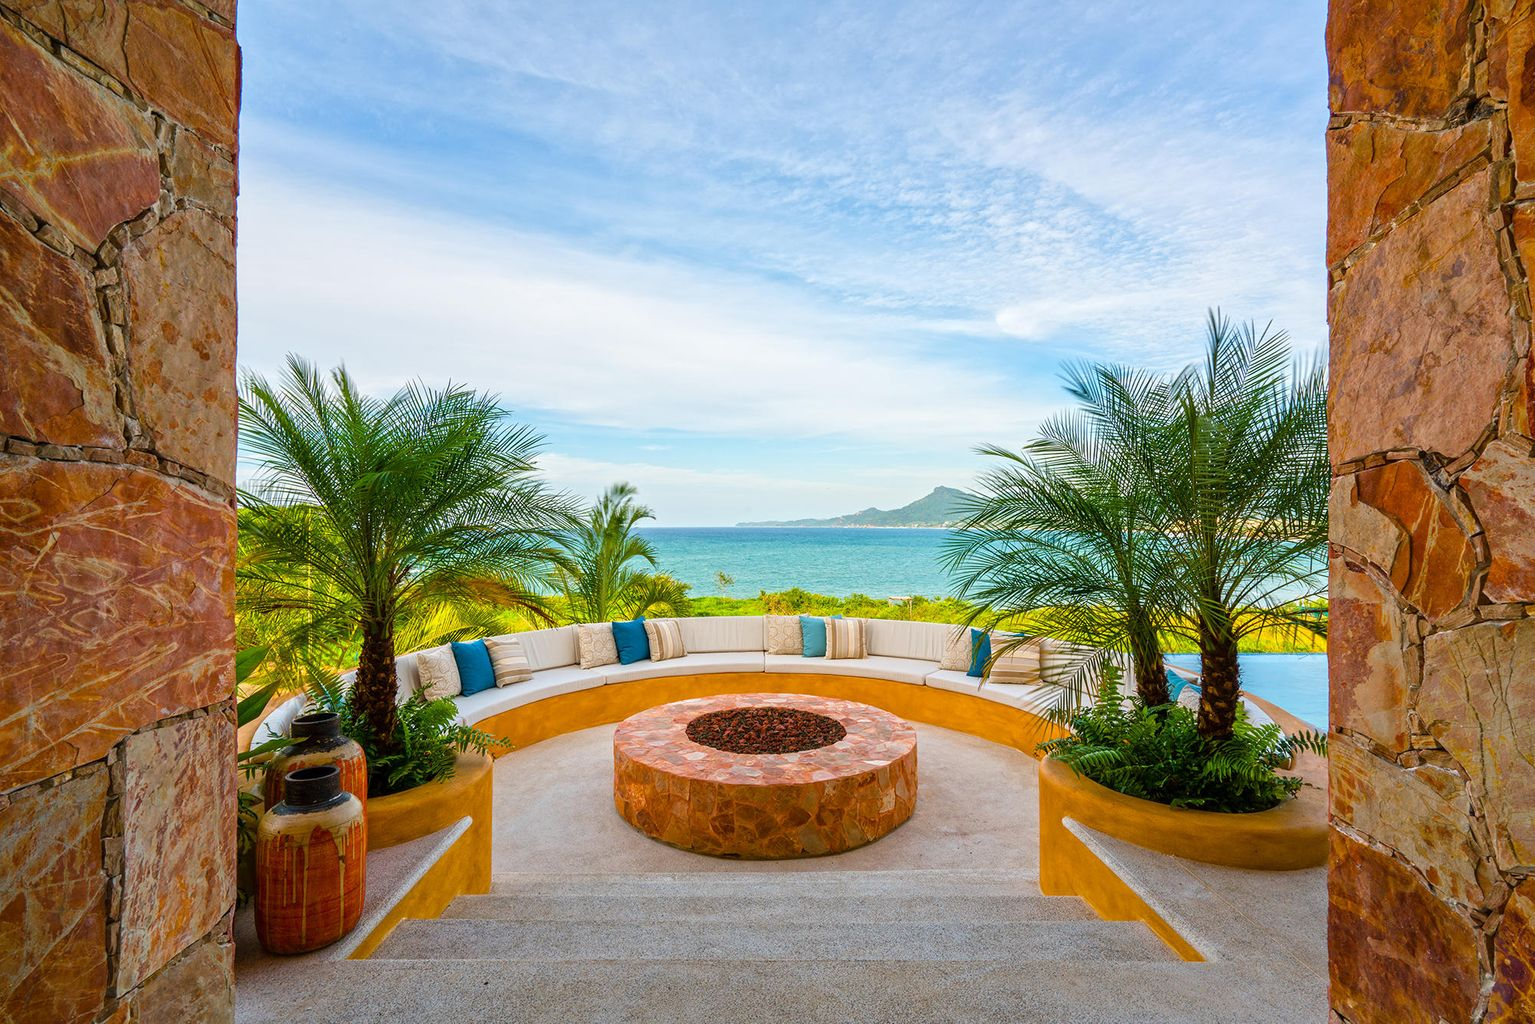 FIRE PIT OVERLOOKING THE OCEAN